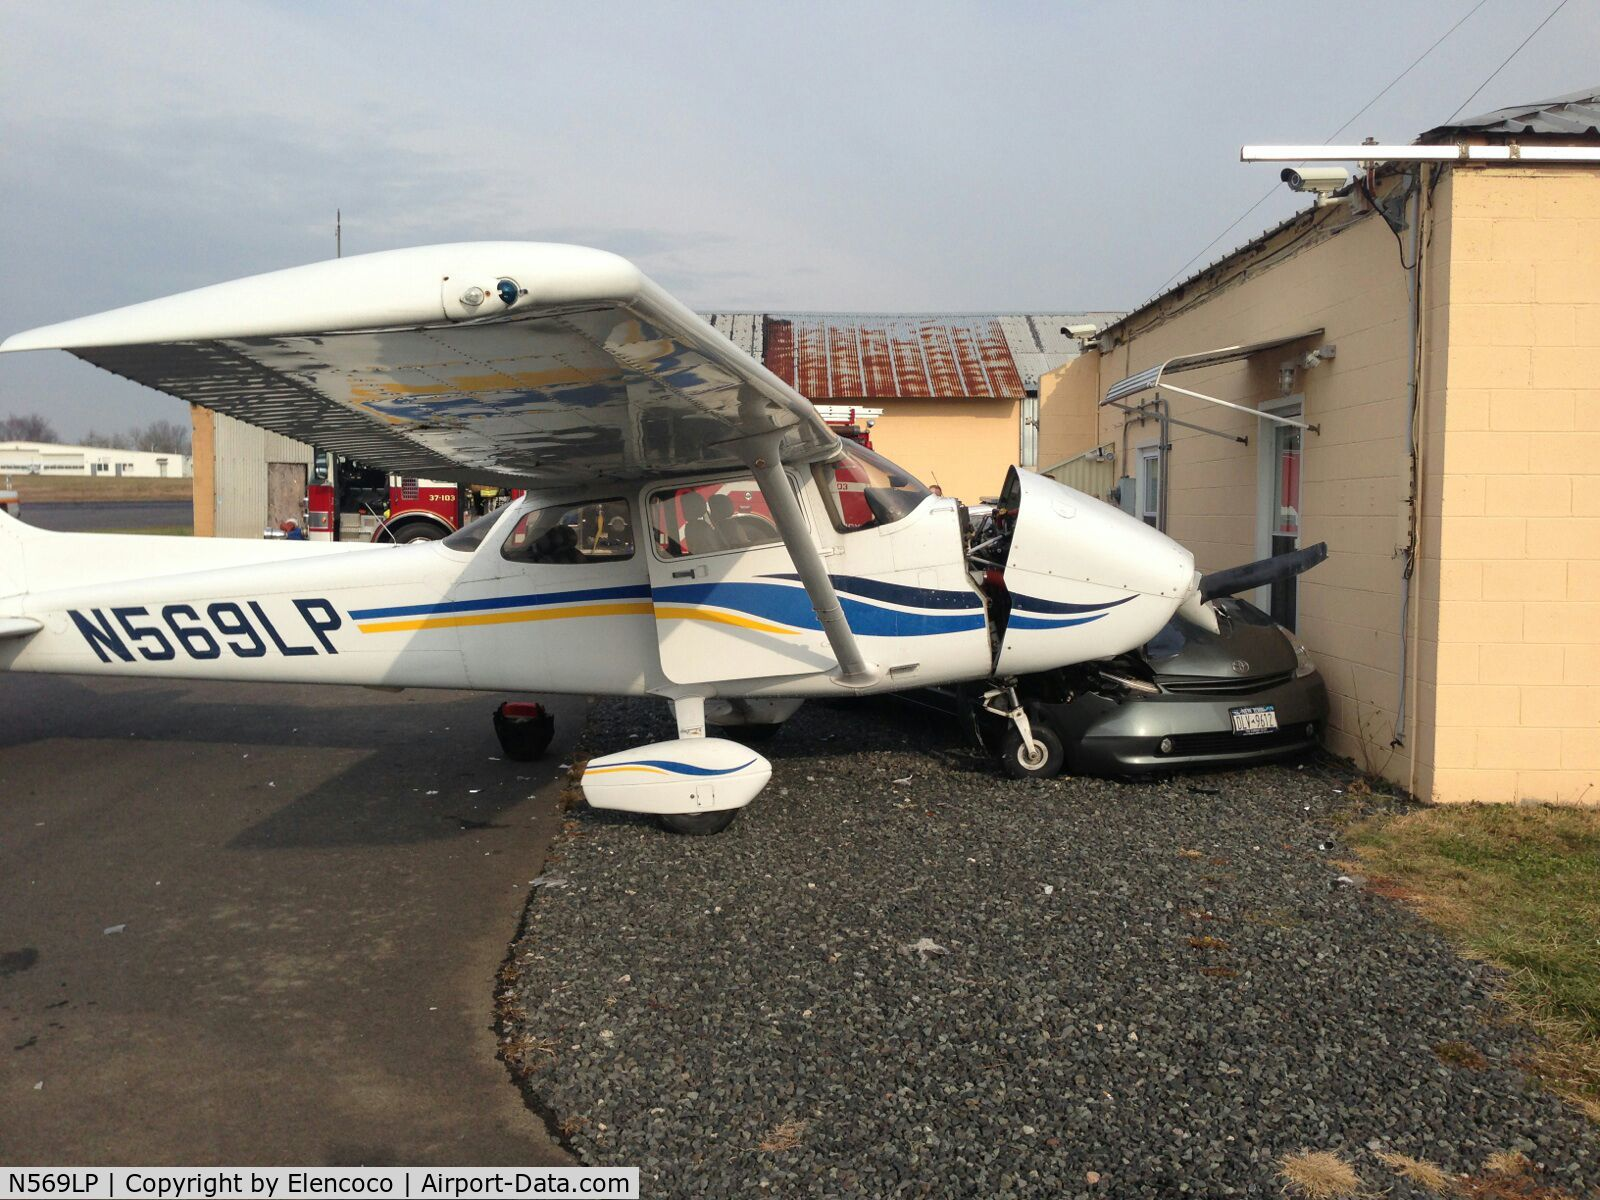 N569LP, 1999 Cessna 172S Skyhawk C/N 172S8248, needs fixing now